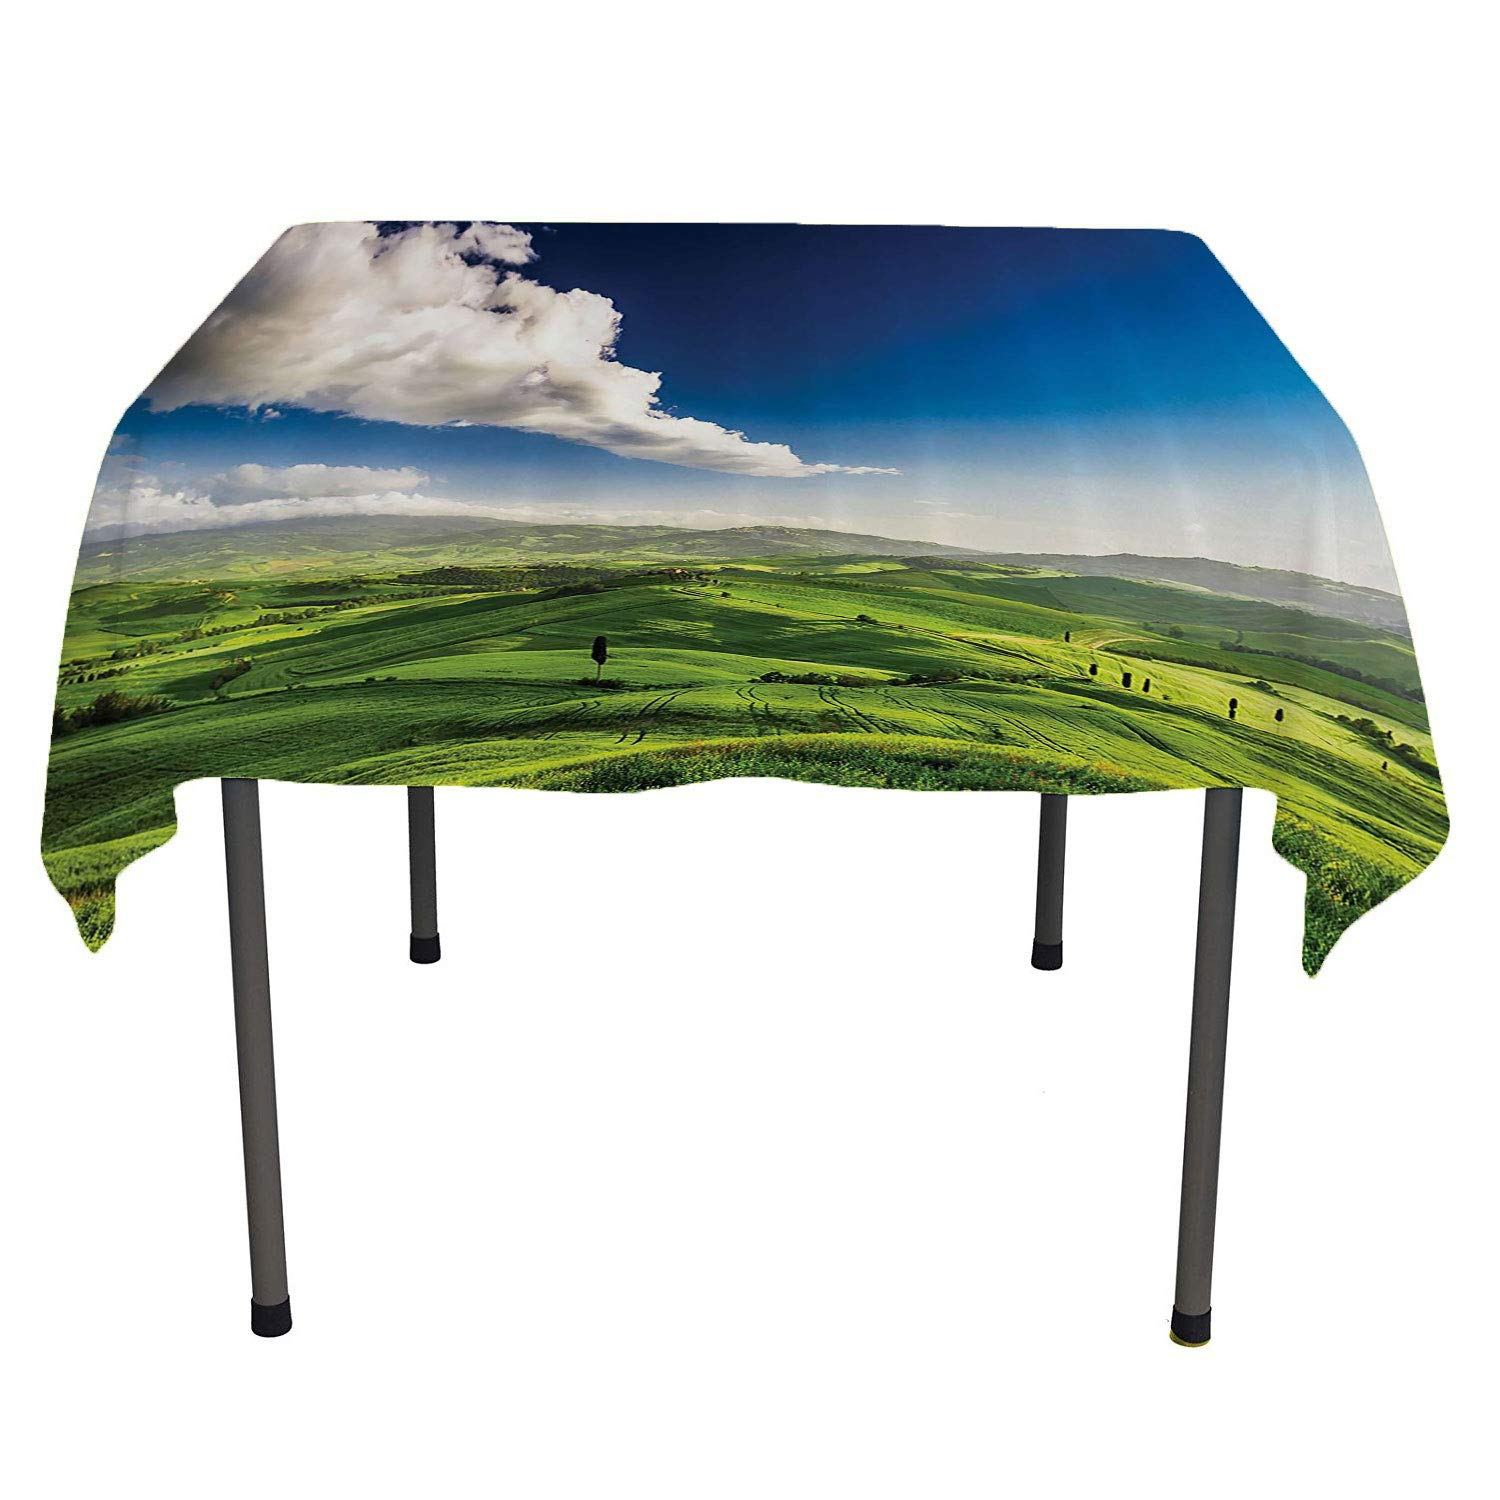 color10 60  W By 90  L All of better Dinning Tabletop Decoration Mountain Peak Snowy Winter colorful Overcast Sky Sunbeams Adventure Austria Europe Image Table Cloth Picnic Outdoor Spring Summer Party Picnic 60 by 84